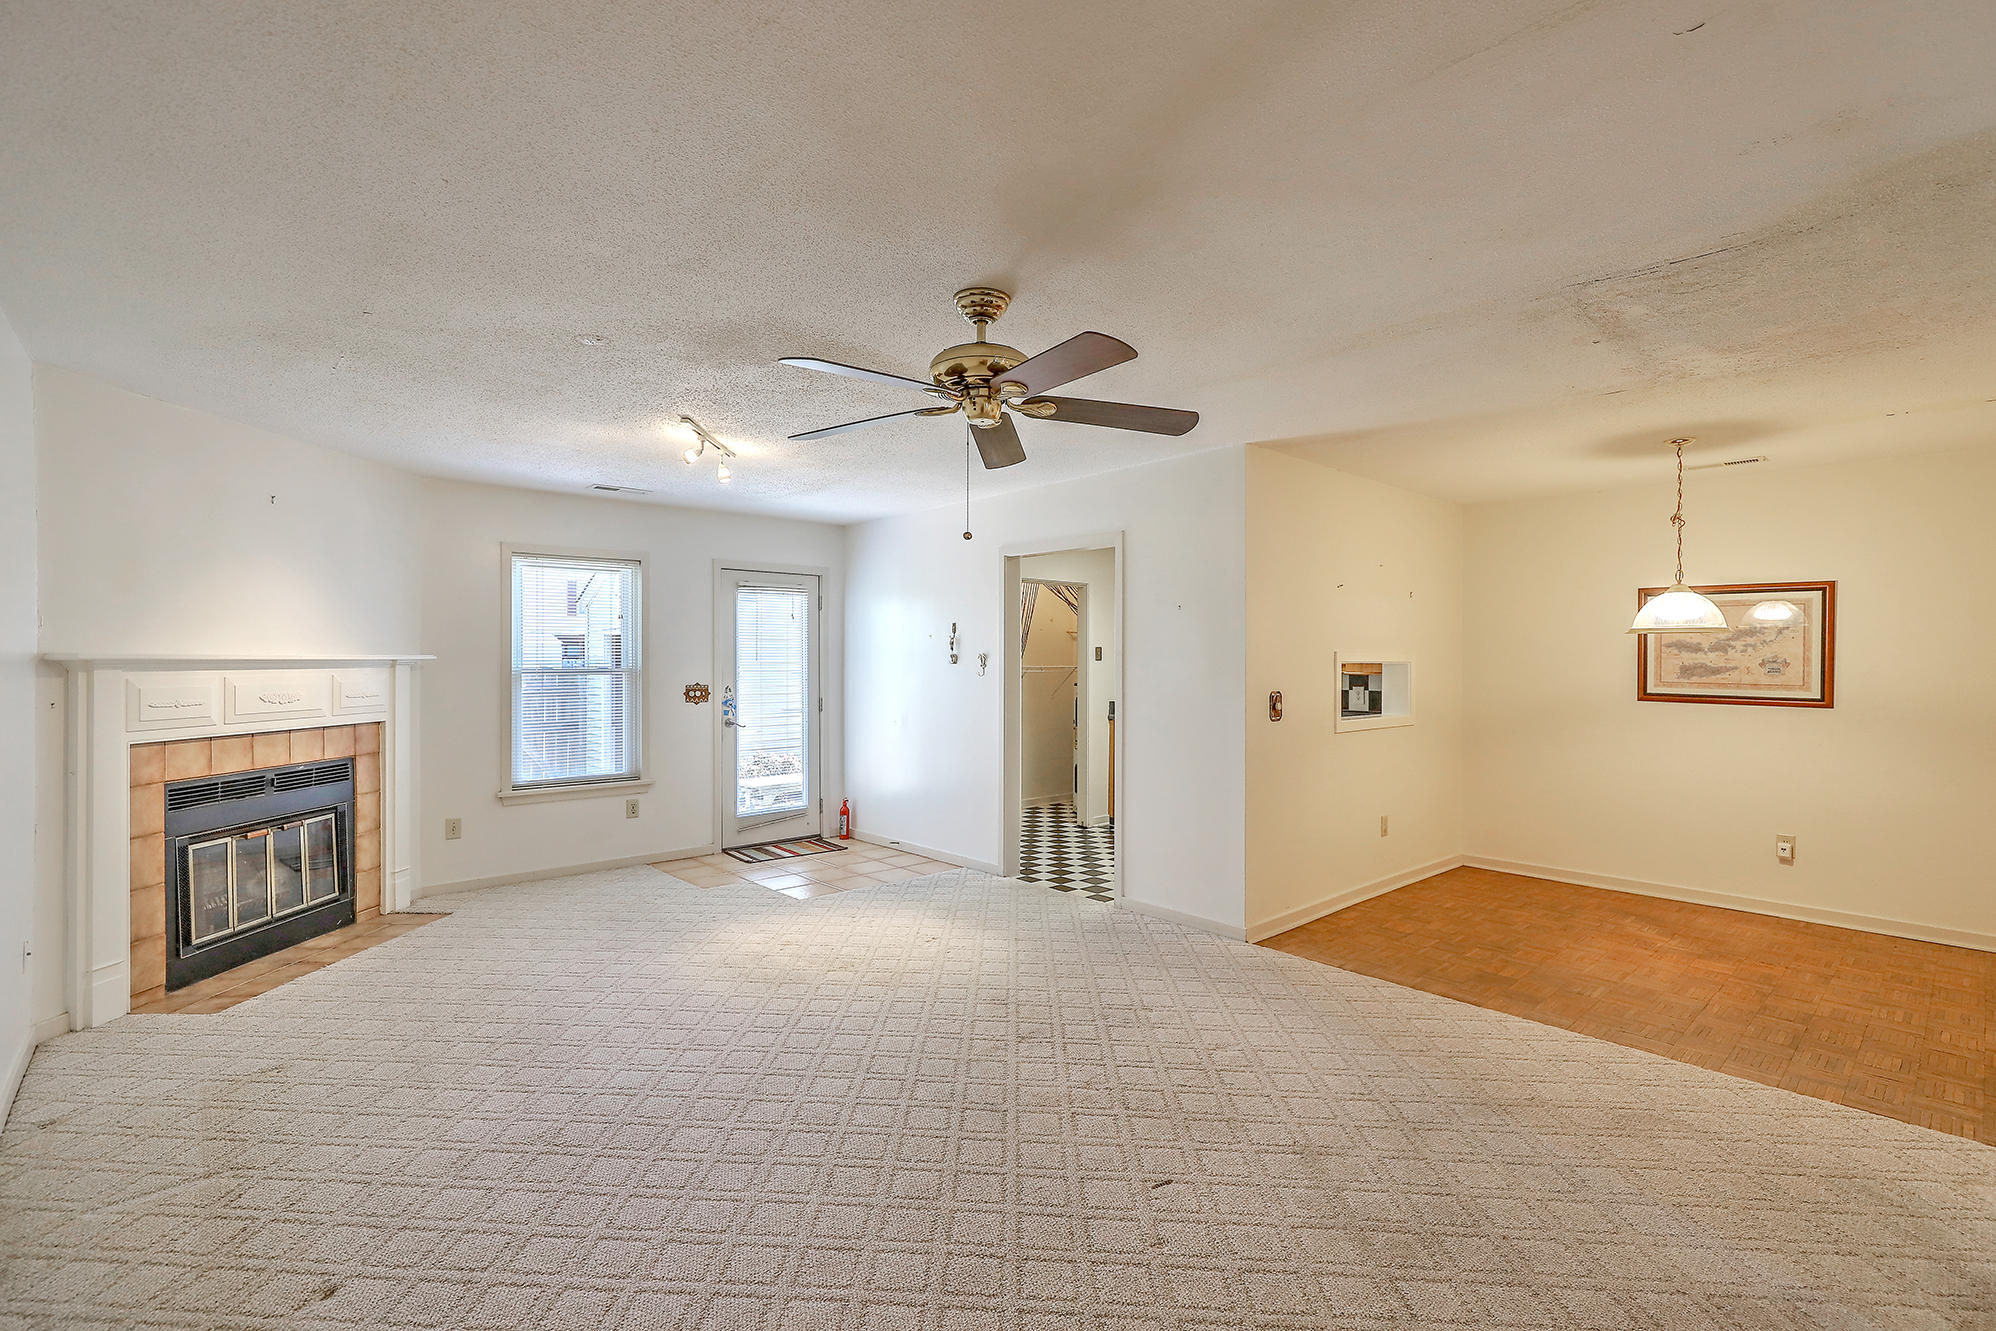 Old Towne Villas Homes For Sale - 2921 Cathedral, Charleston, SC - 29